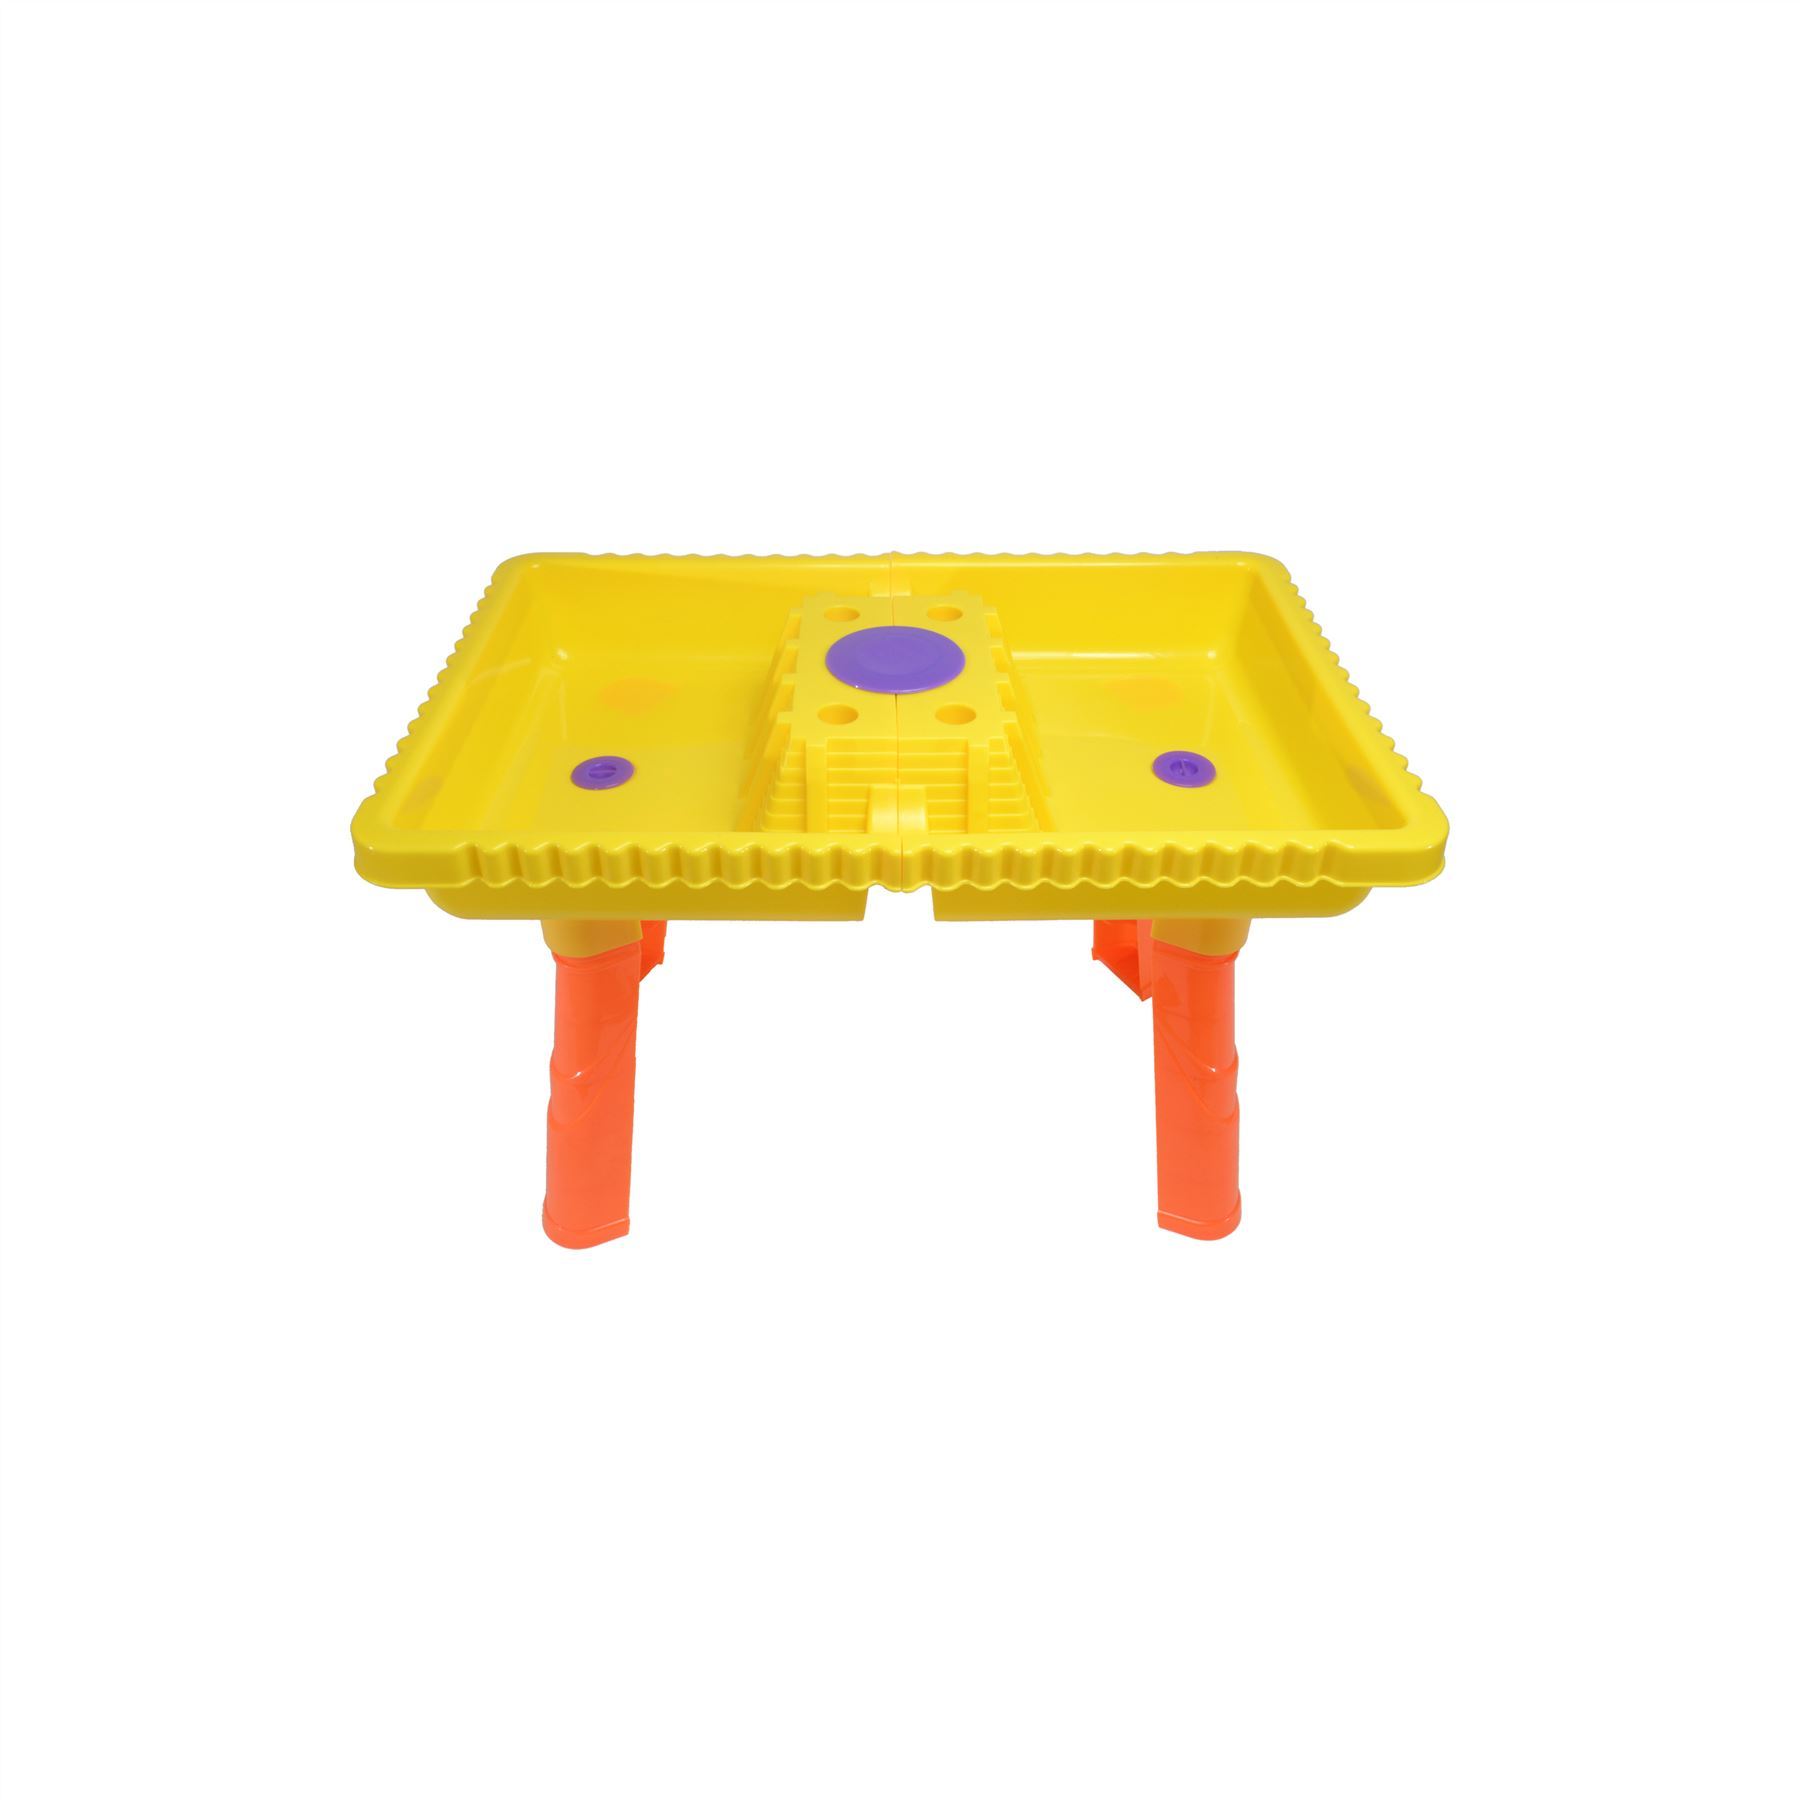 Castle Sand and Water Table set with 2 seats and 10 pieces 9809 5